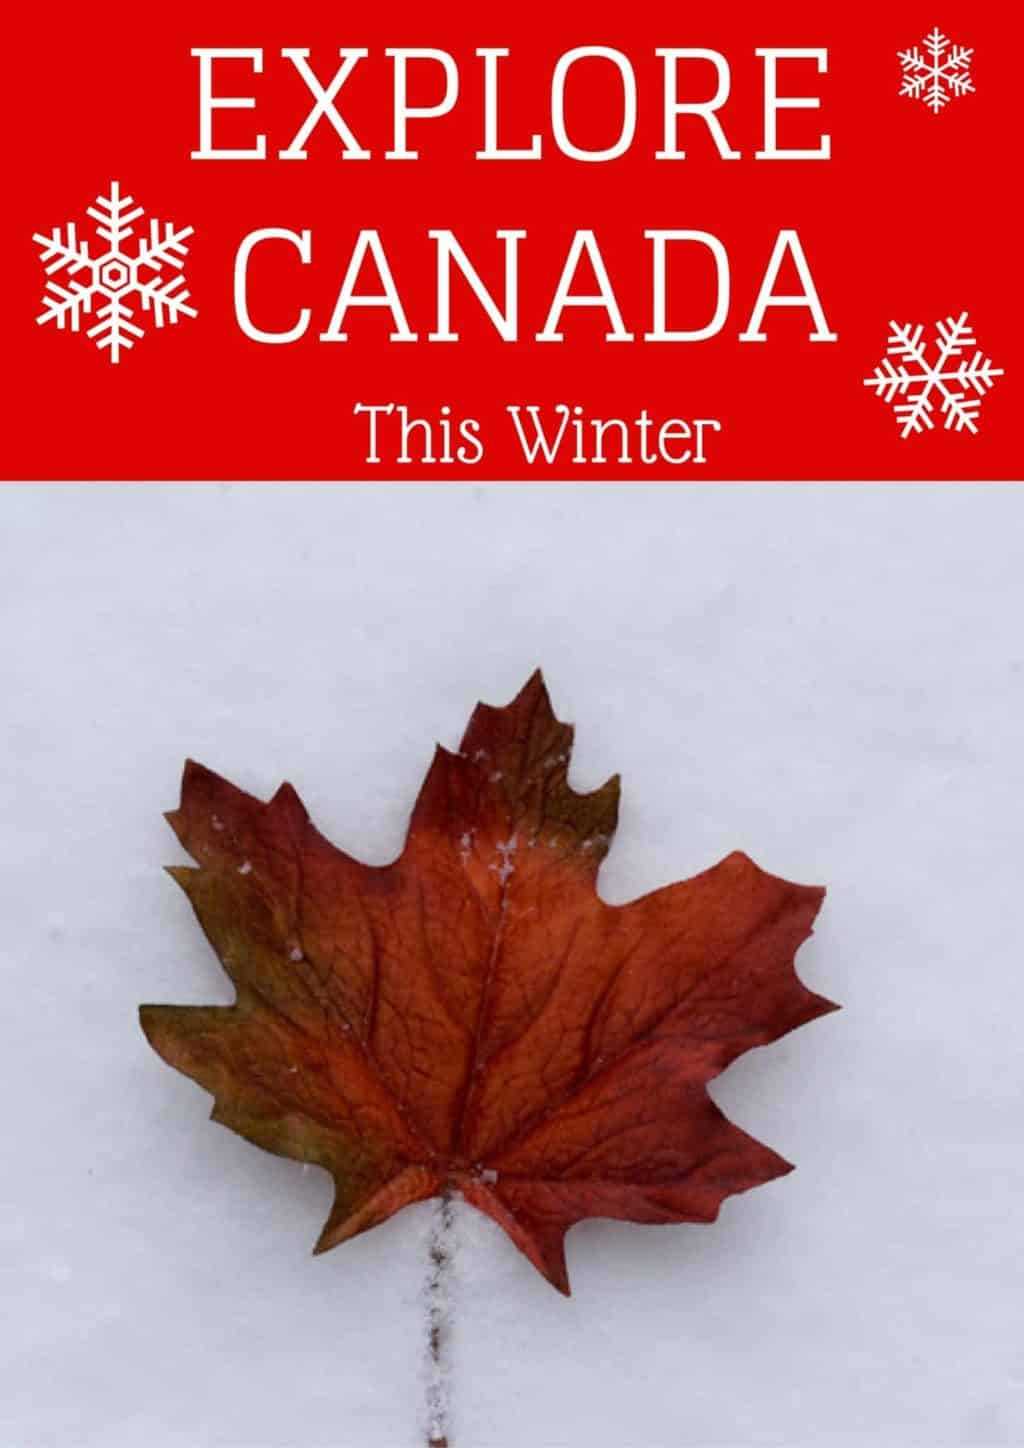 explore Canada in the winter